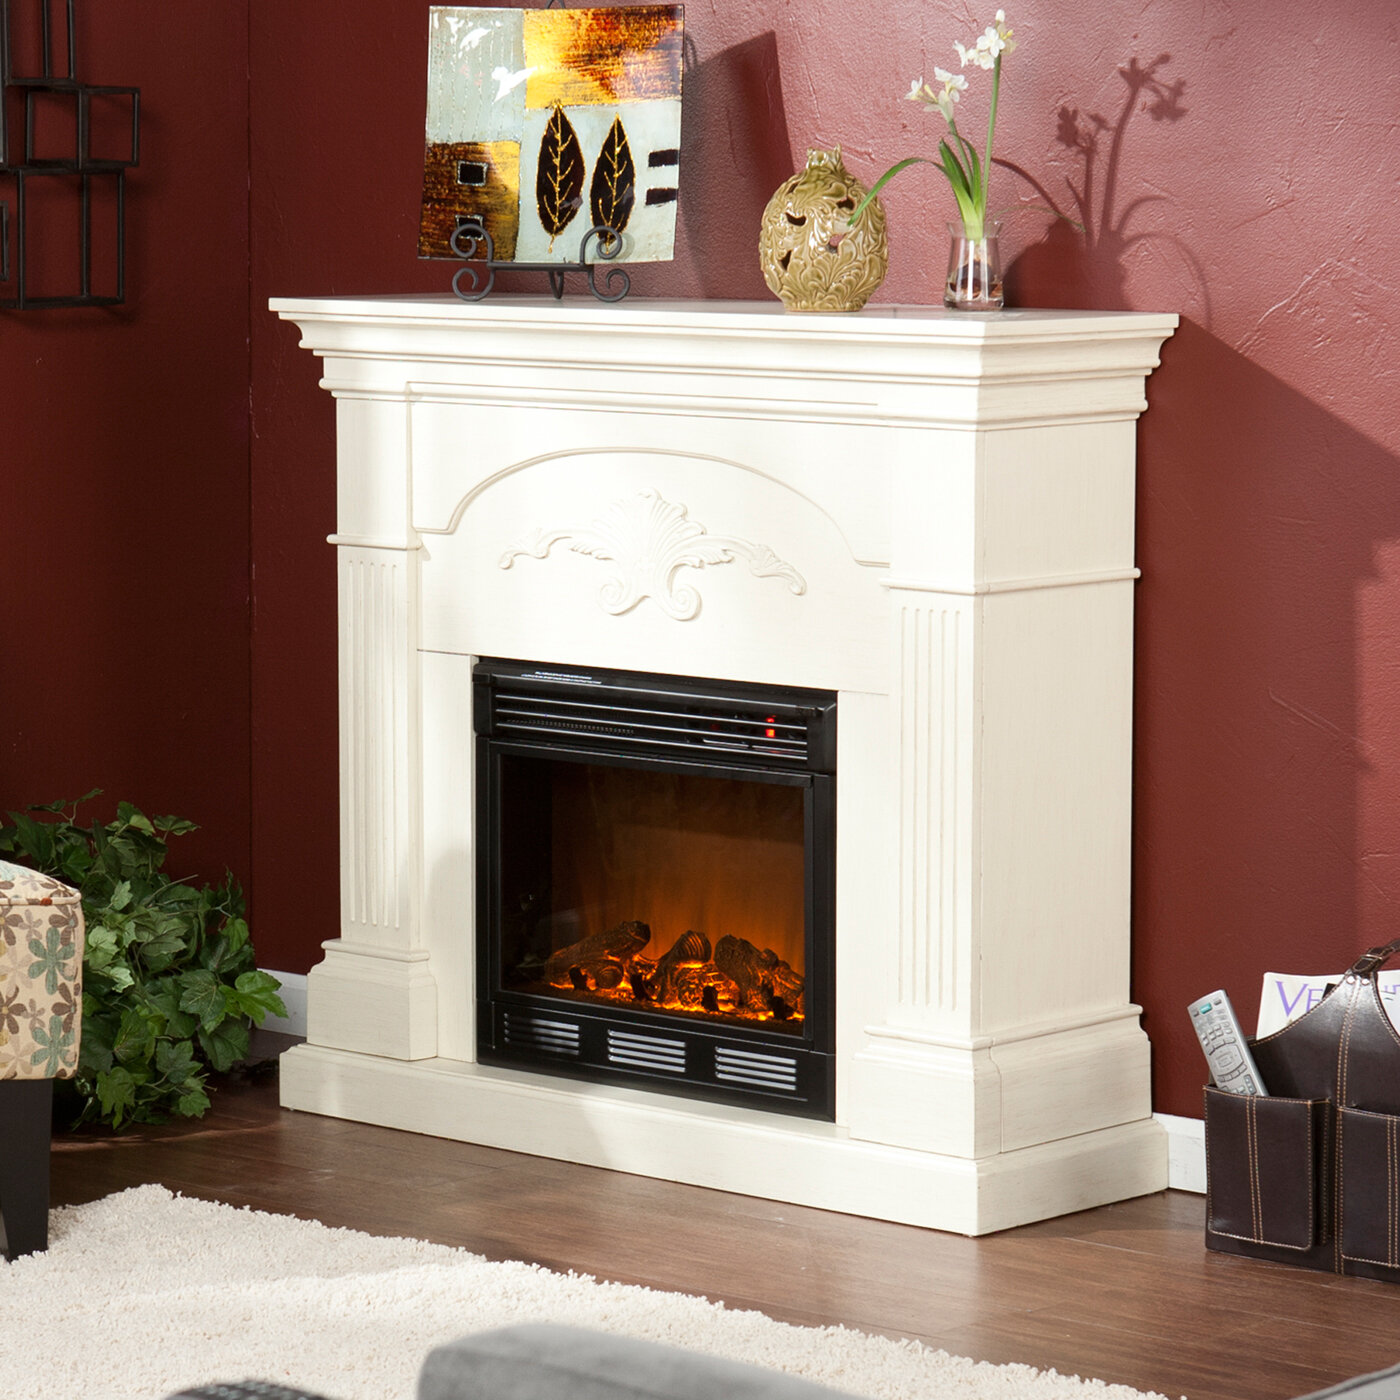 types energy bestazy best electric of efficient updated reviews fireplace fireplaces